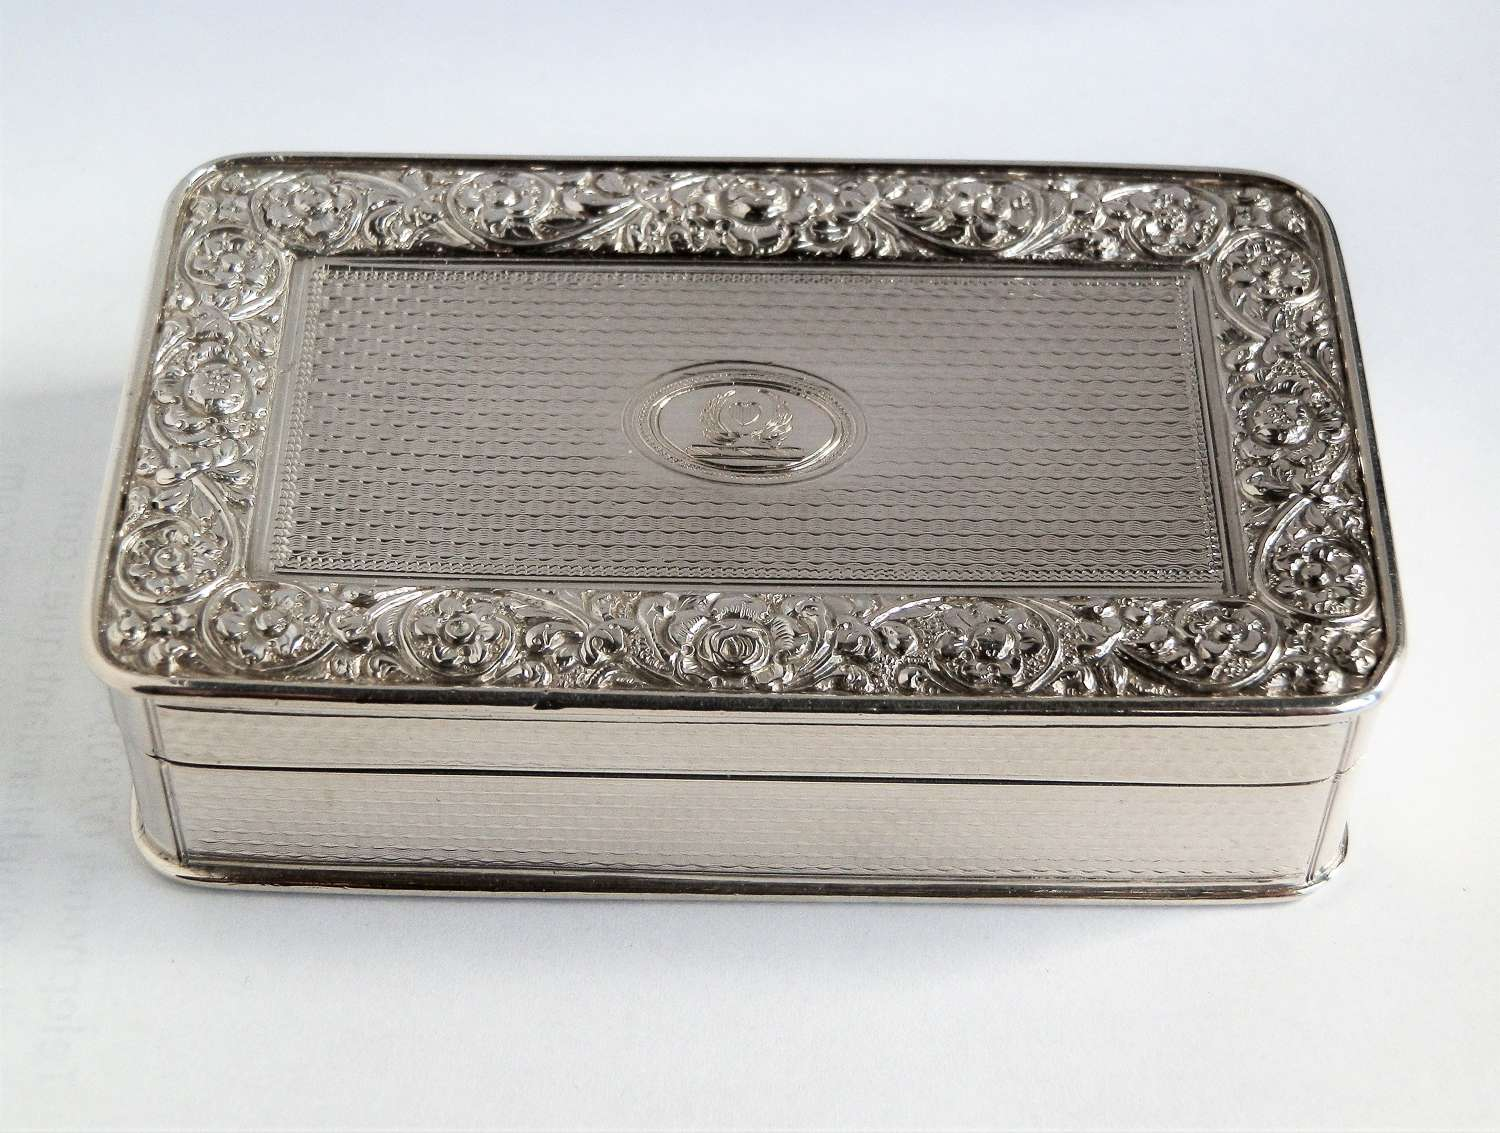 A large George III silver table snuff box, Wm Edwards, 1818